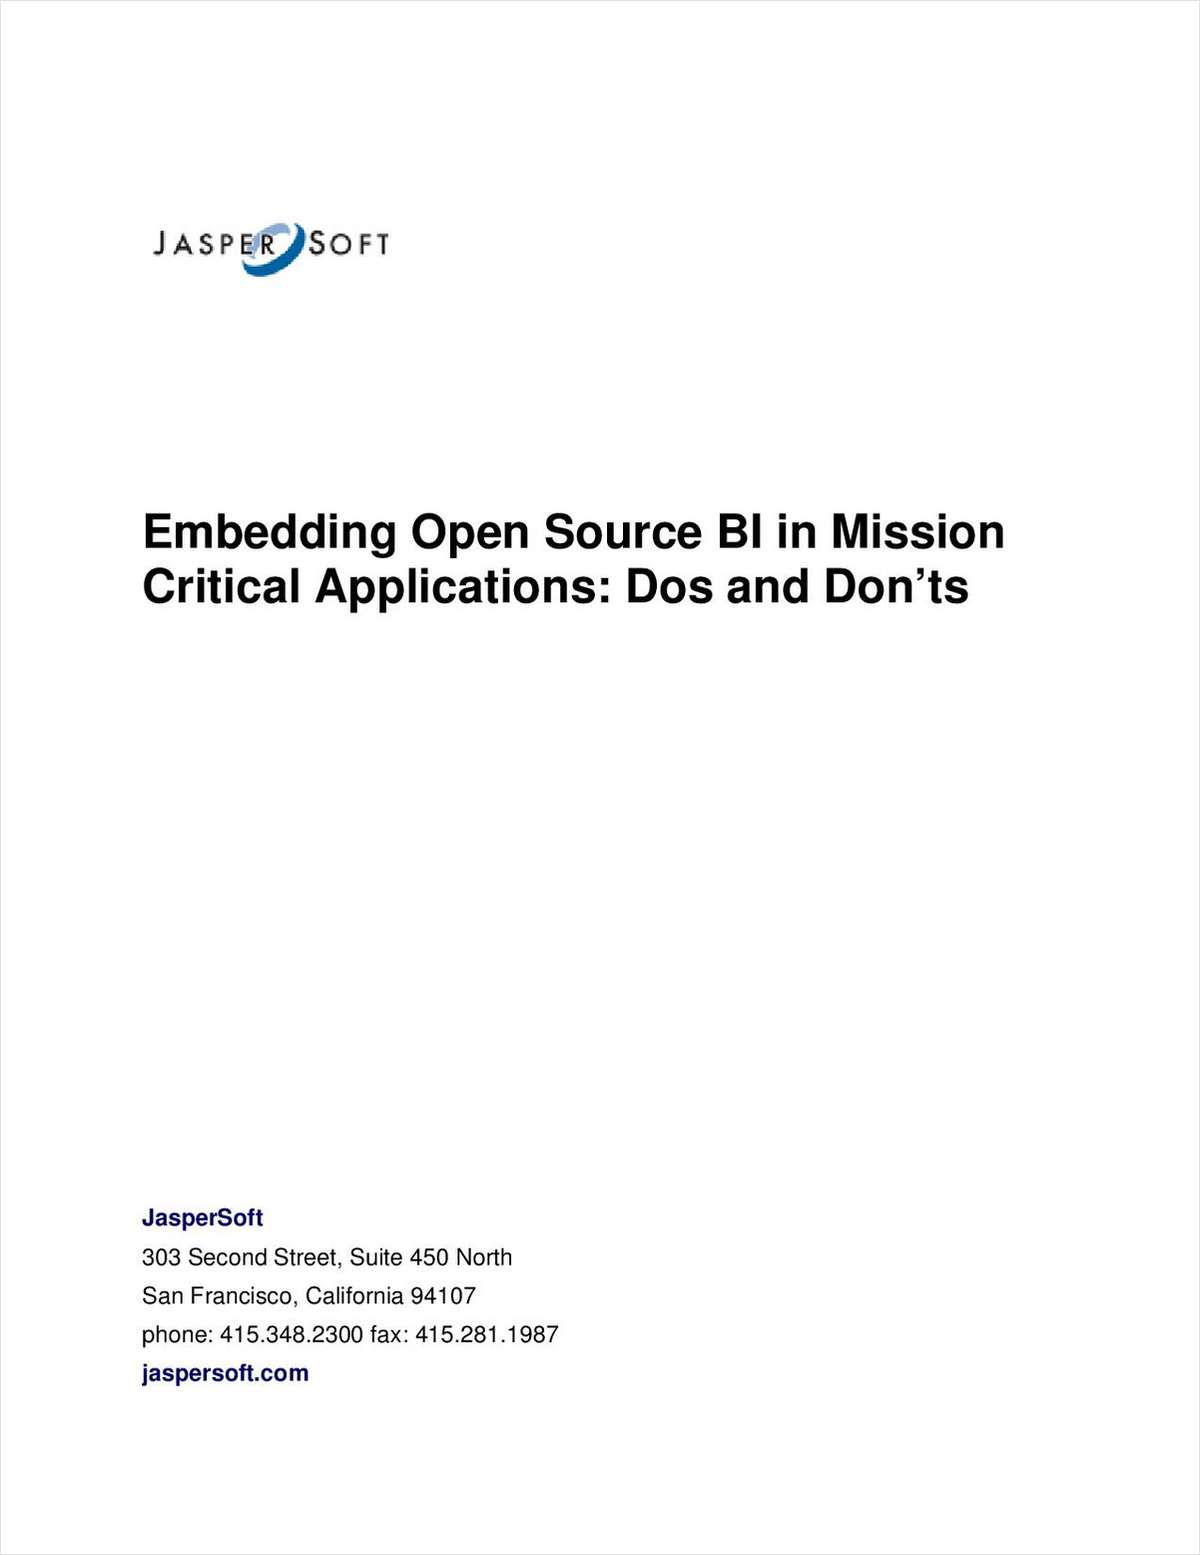 Do's and Don'ts: Embedding Open Source BI in Mission Critical Applications